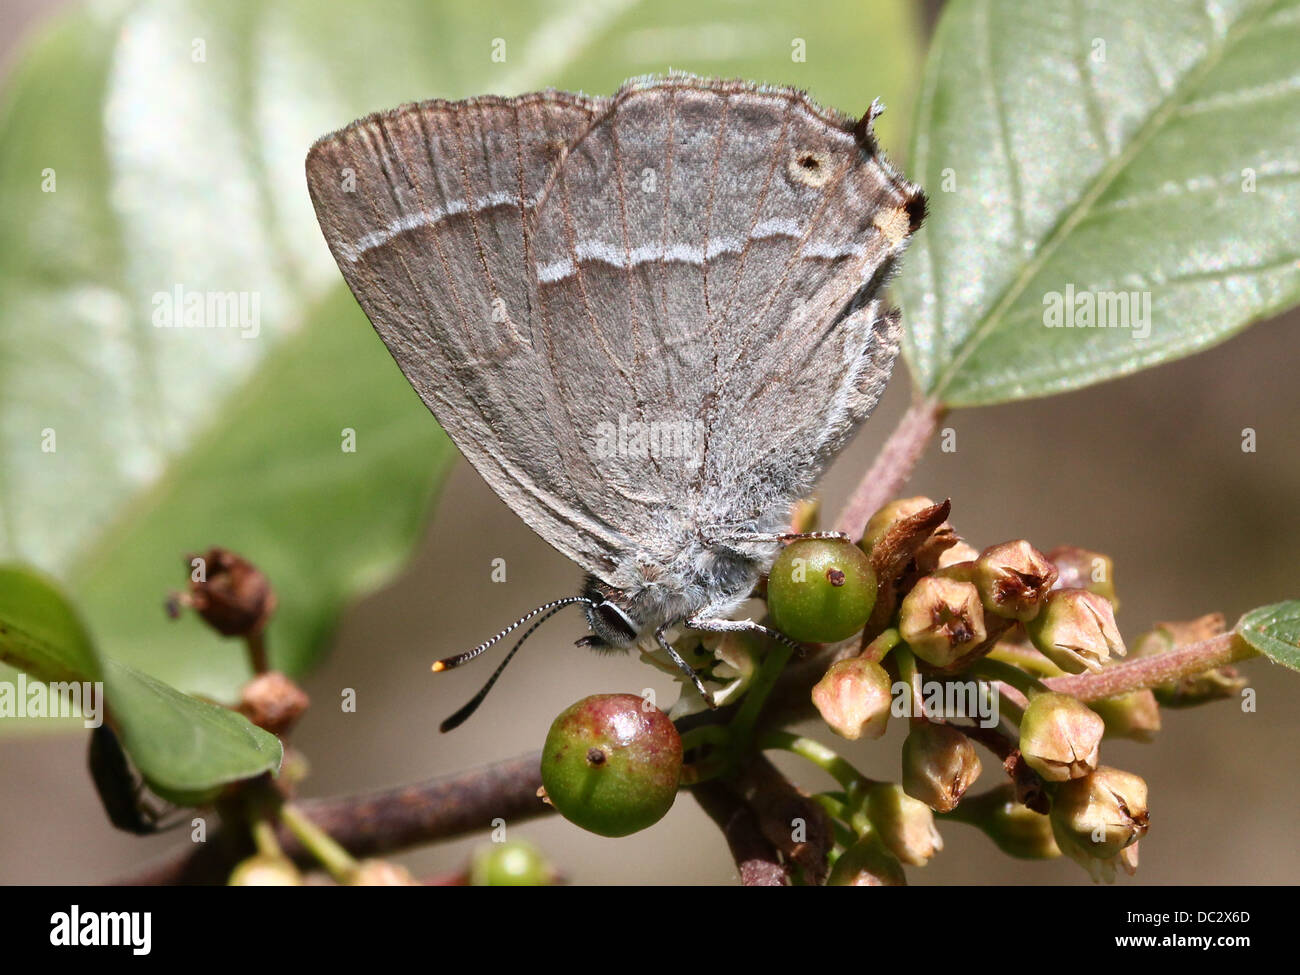 Purple Hairstreak Butterfly (Favonius quercus) foraging and posing on a leaf with wings closed - Stock Image